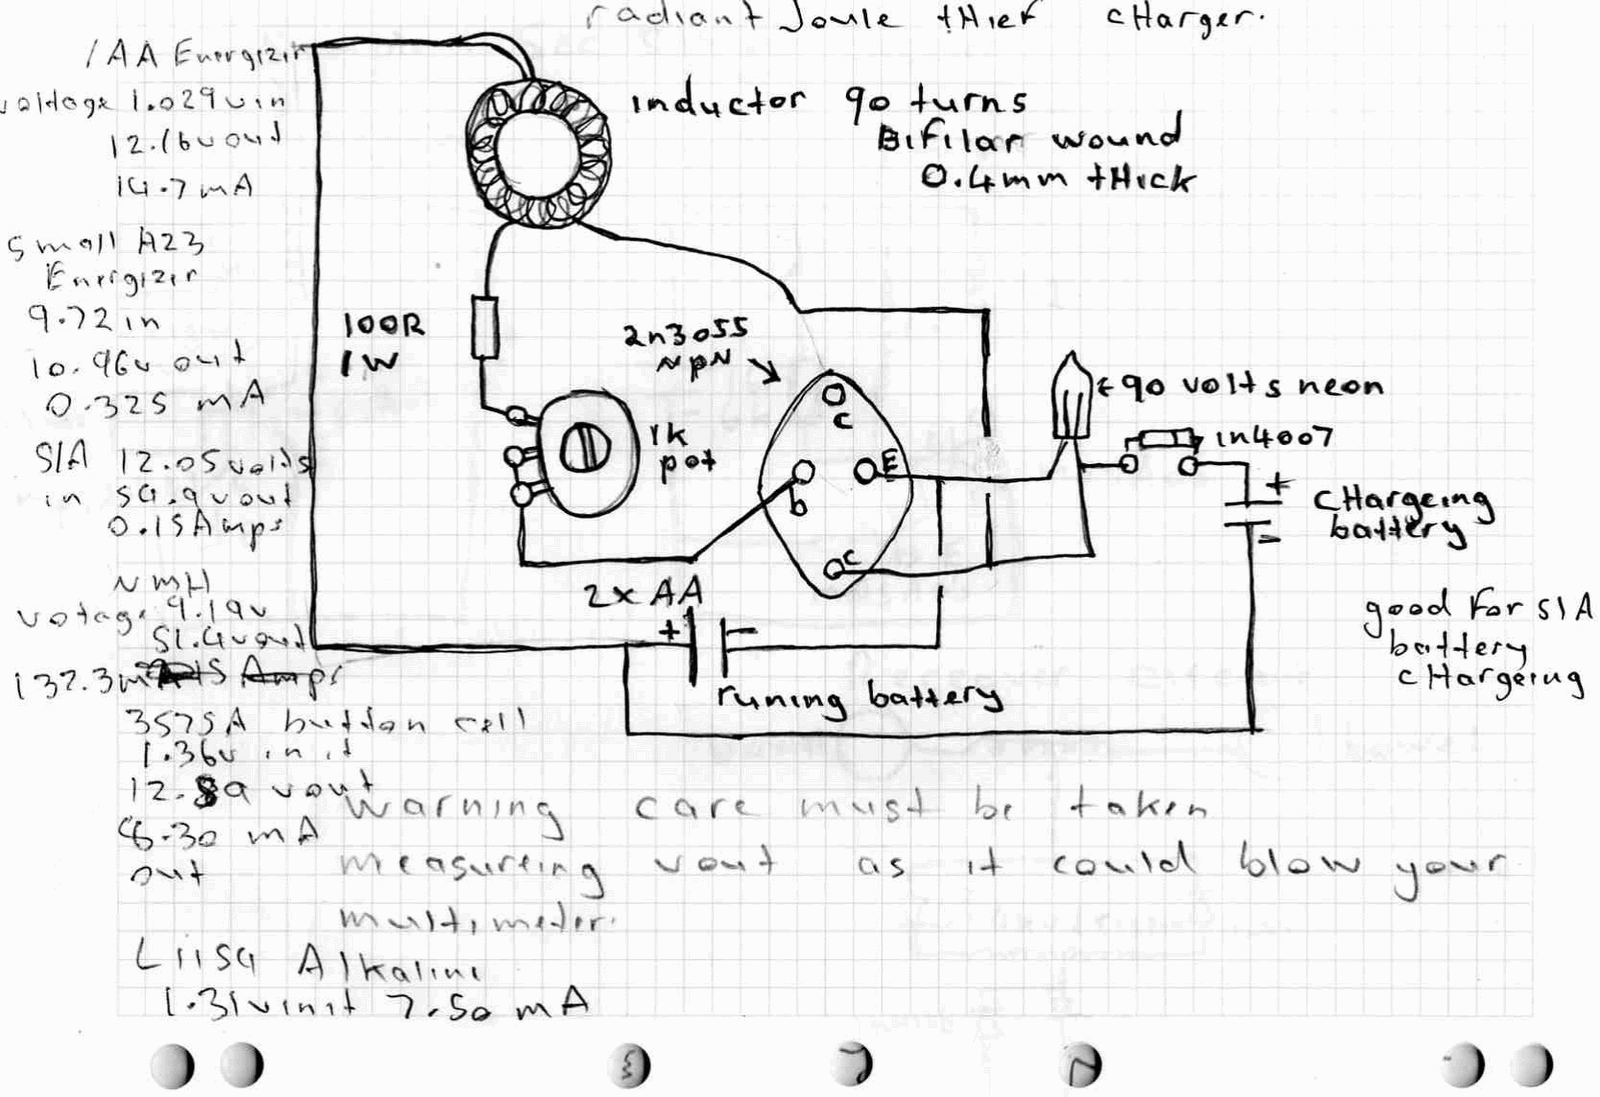 Free Energy Circuit Page 4 Power Supply Circuits Pure Sine Wave Generator On Bug Zapper Schematic Diagram Making A Joule Thief